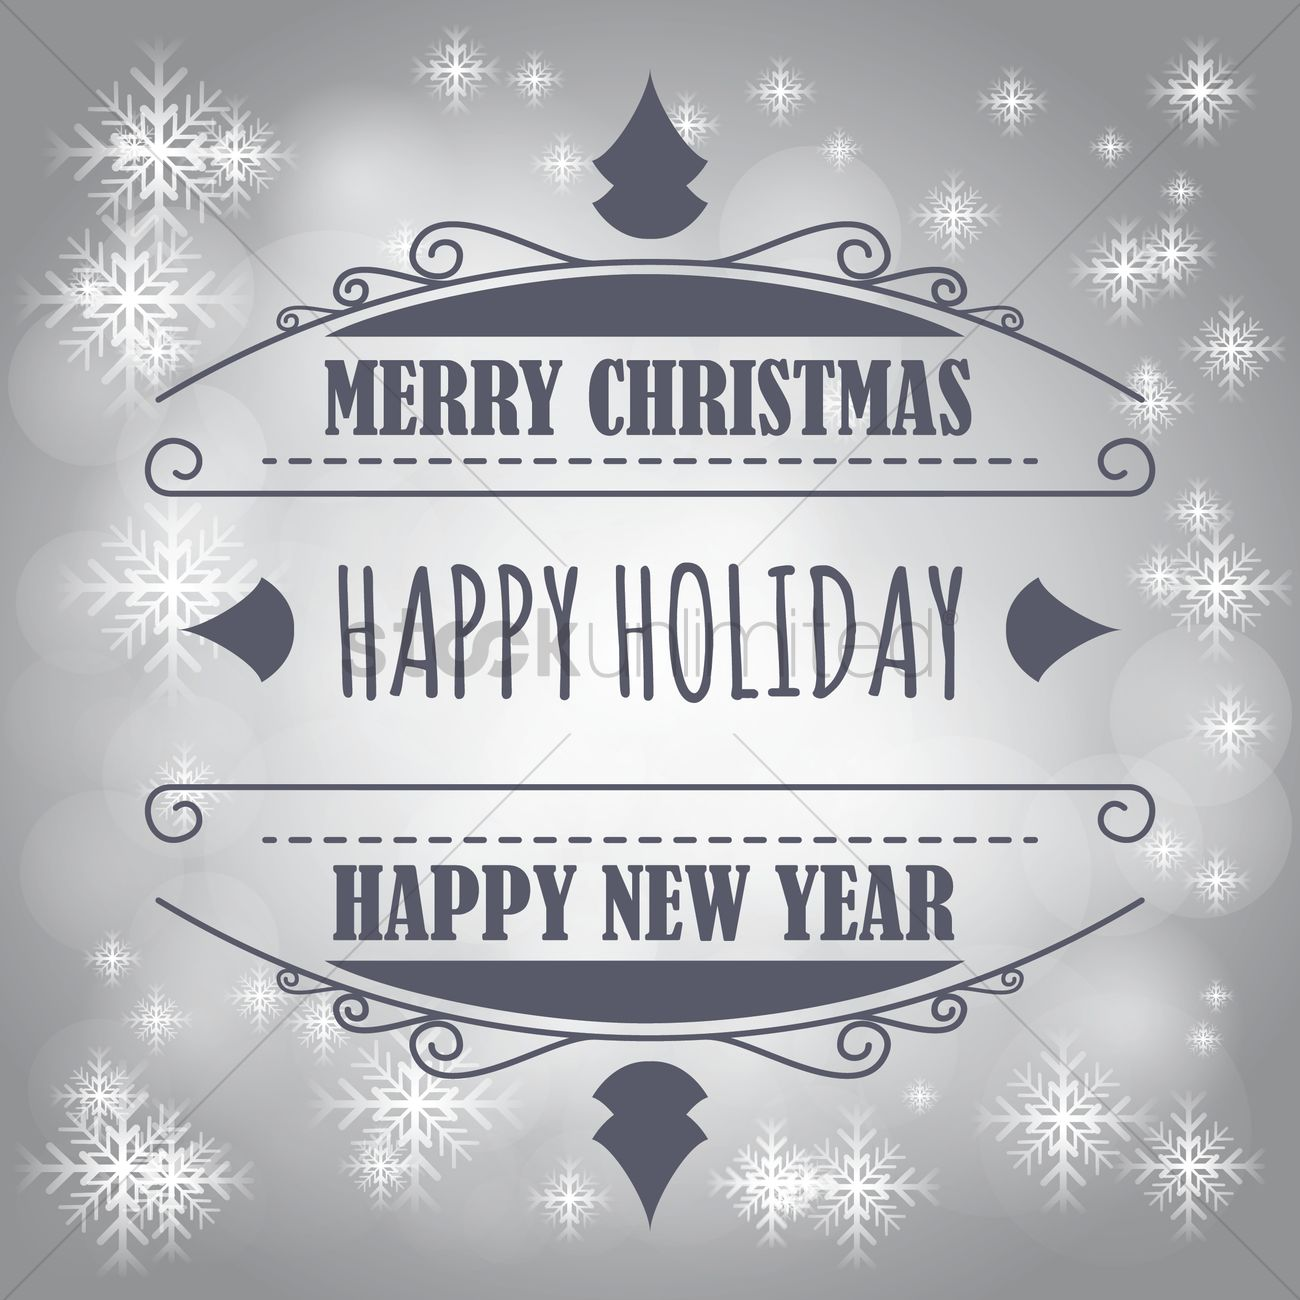 Free Merry christmas and new year greetings Vector Image - 1603982 ...